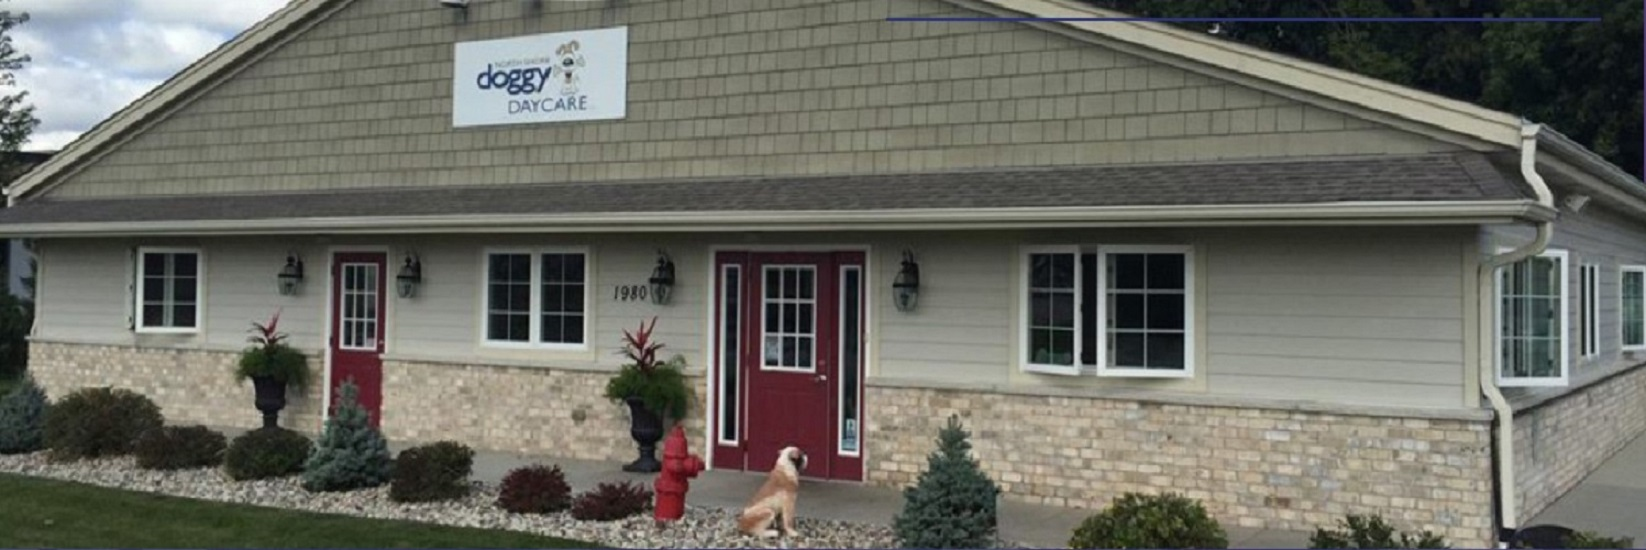 NSDD- North Shore Doggy Daycare - Dogs Are Special Facility